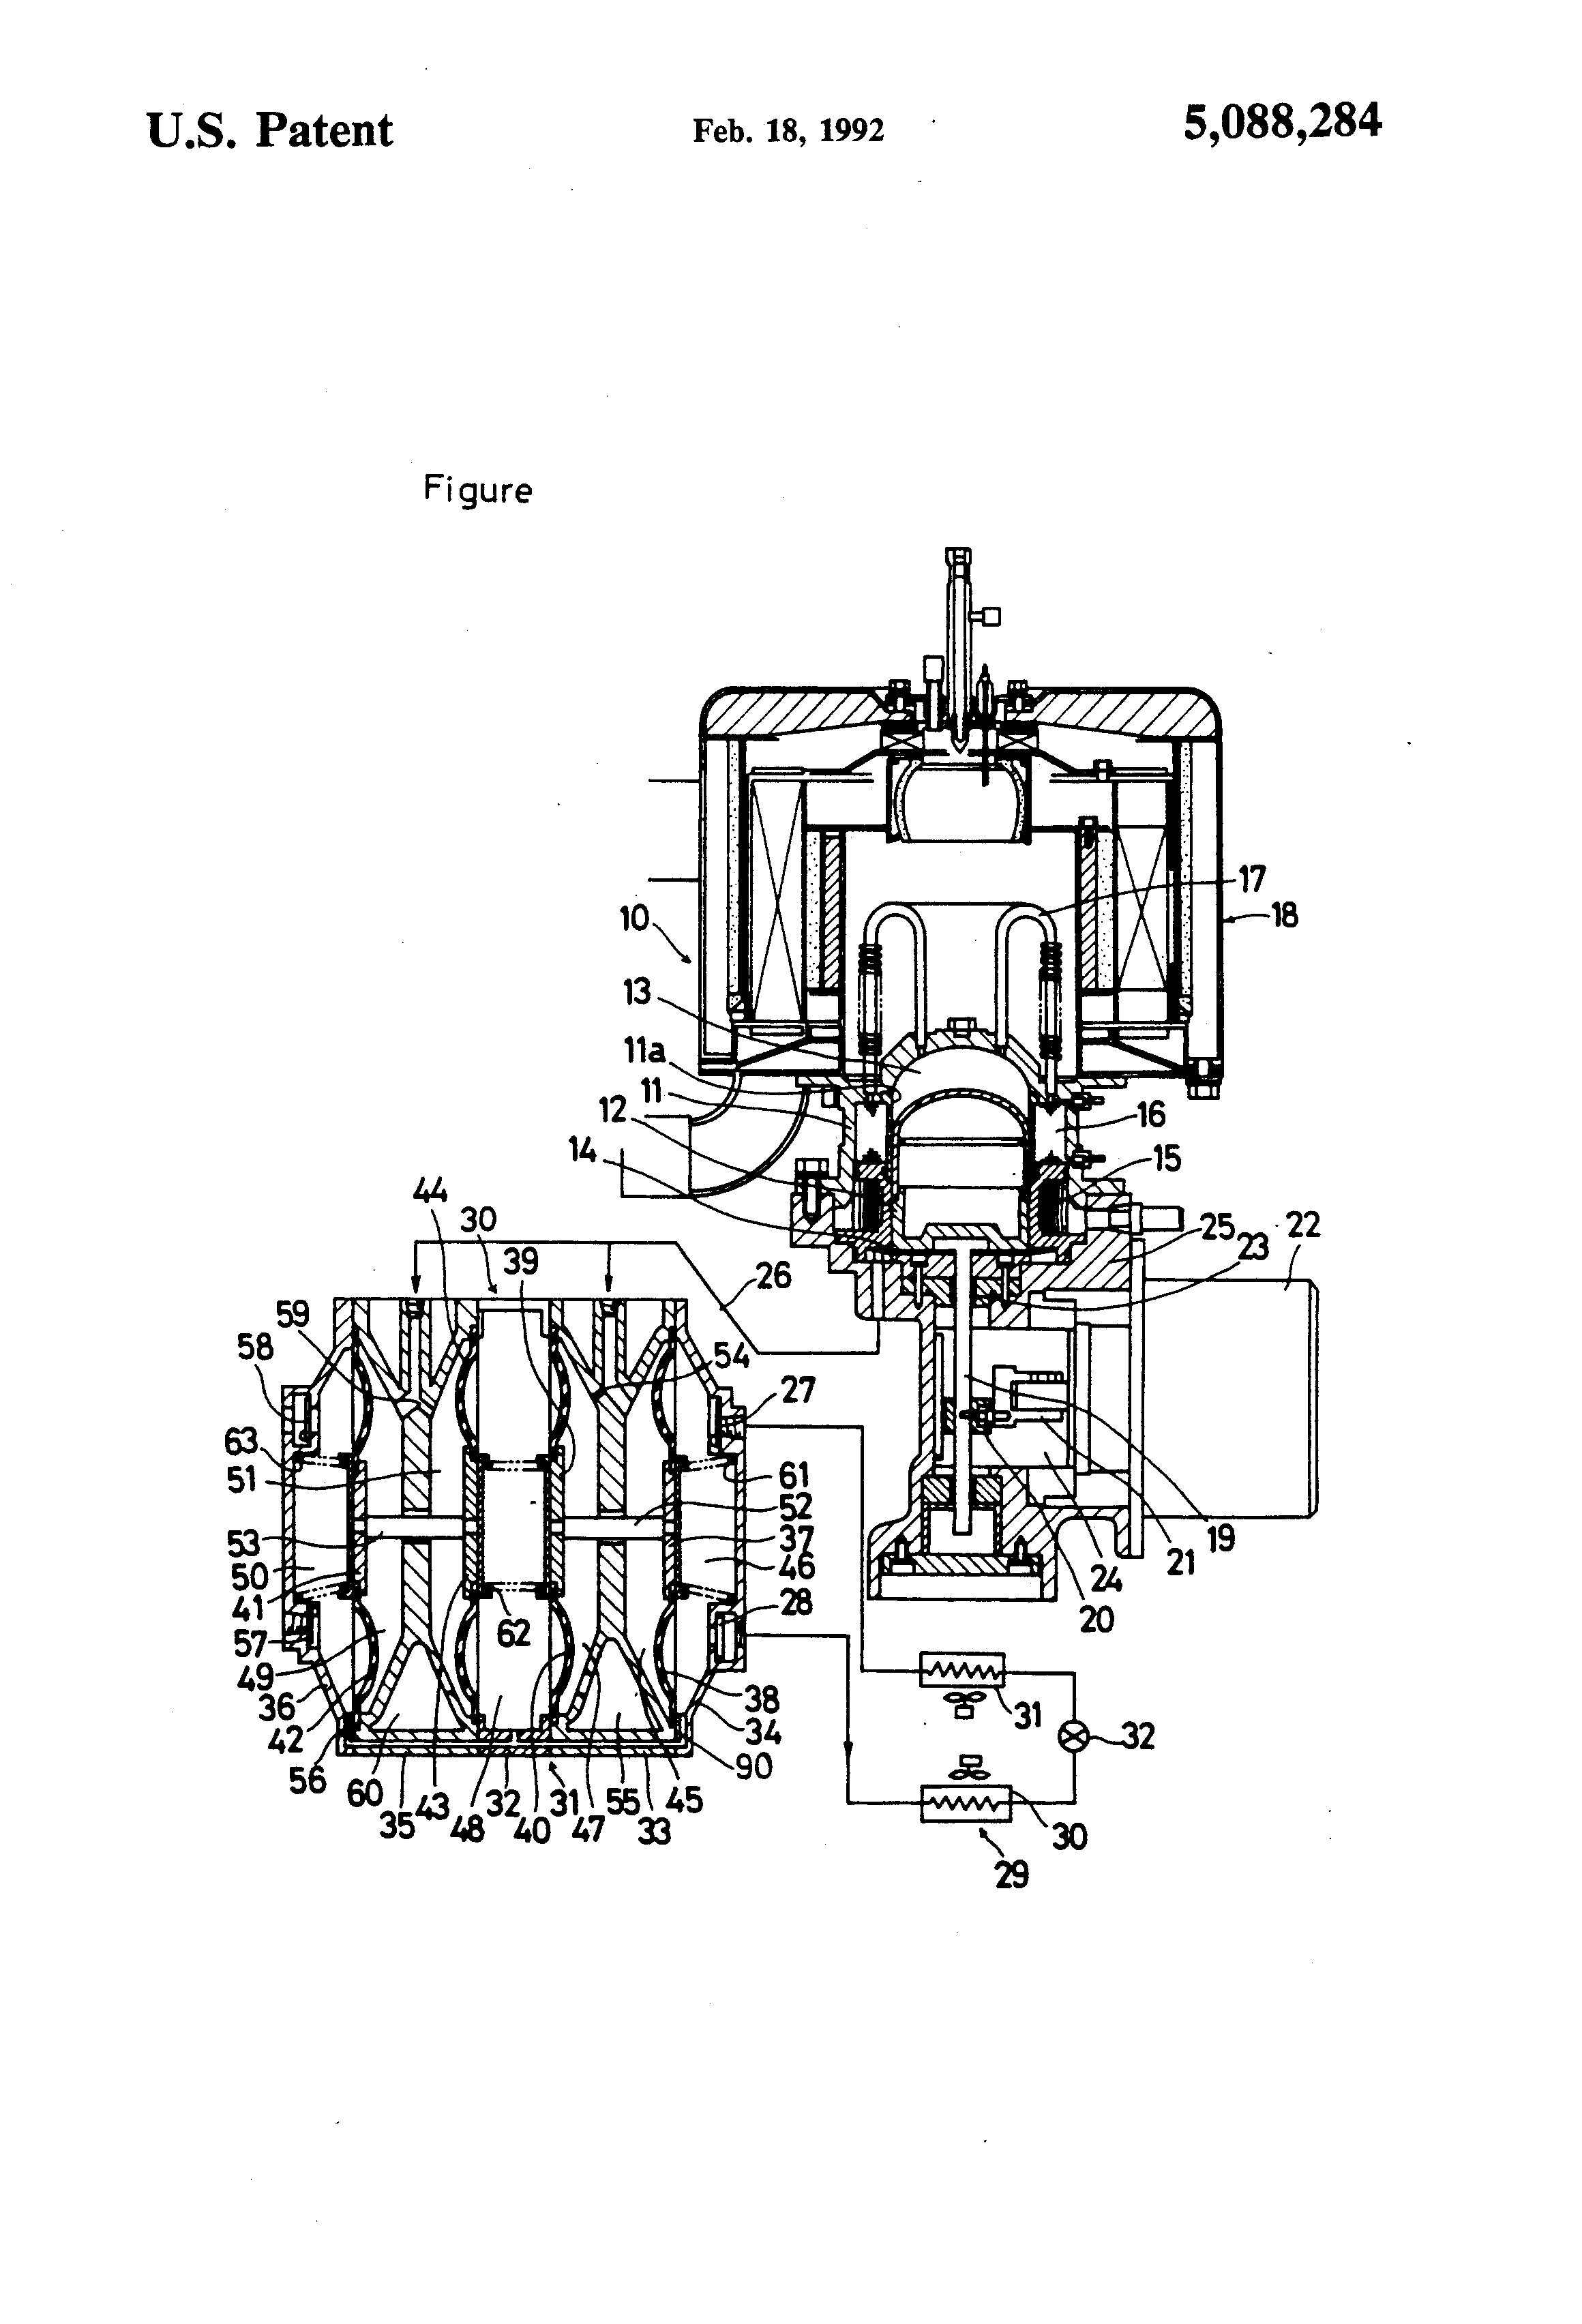 Compressor integral with Stirling engine US 5088284 A